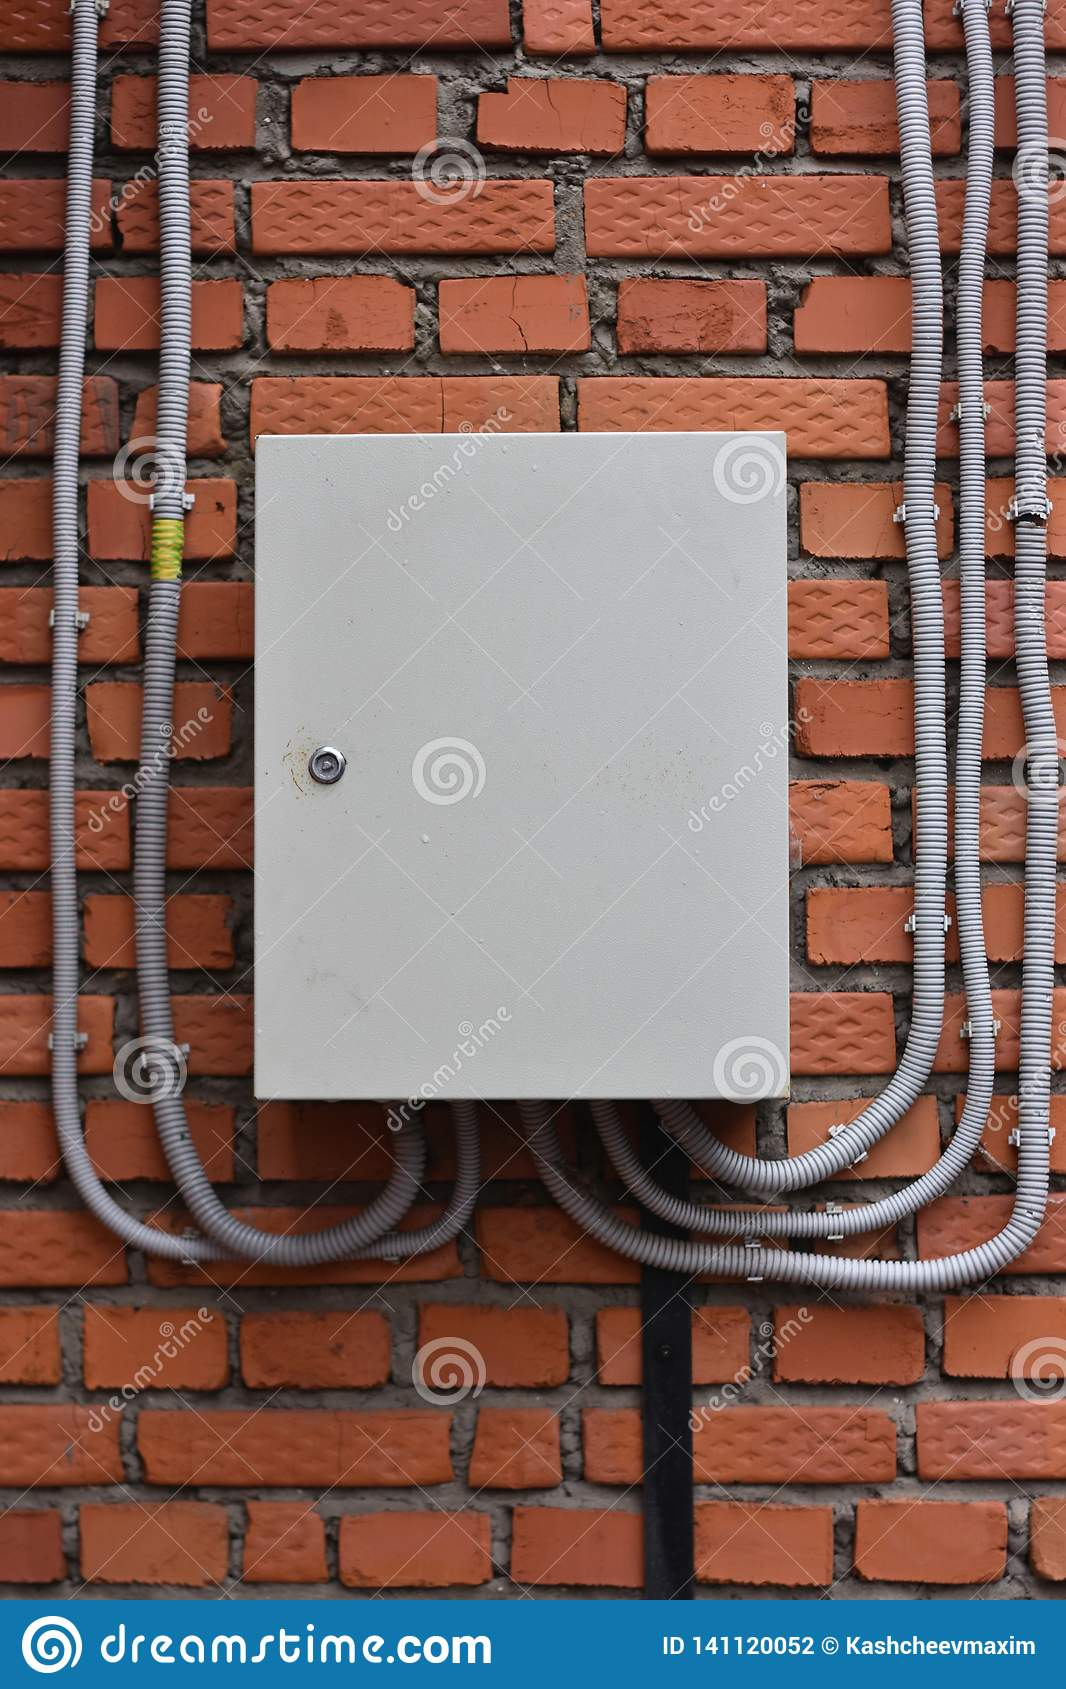 Electrical box on a brick wall. plastic cable channels